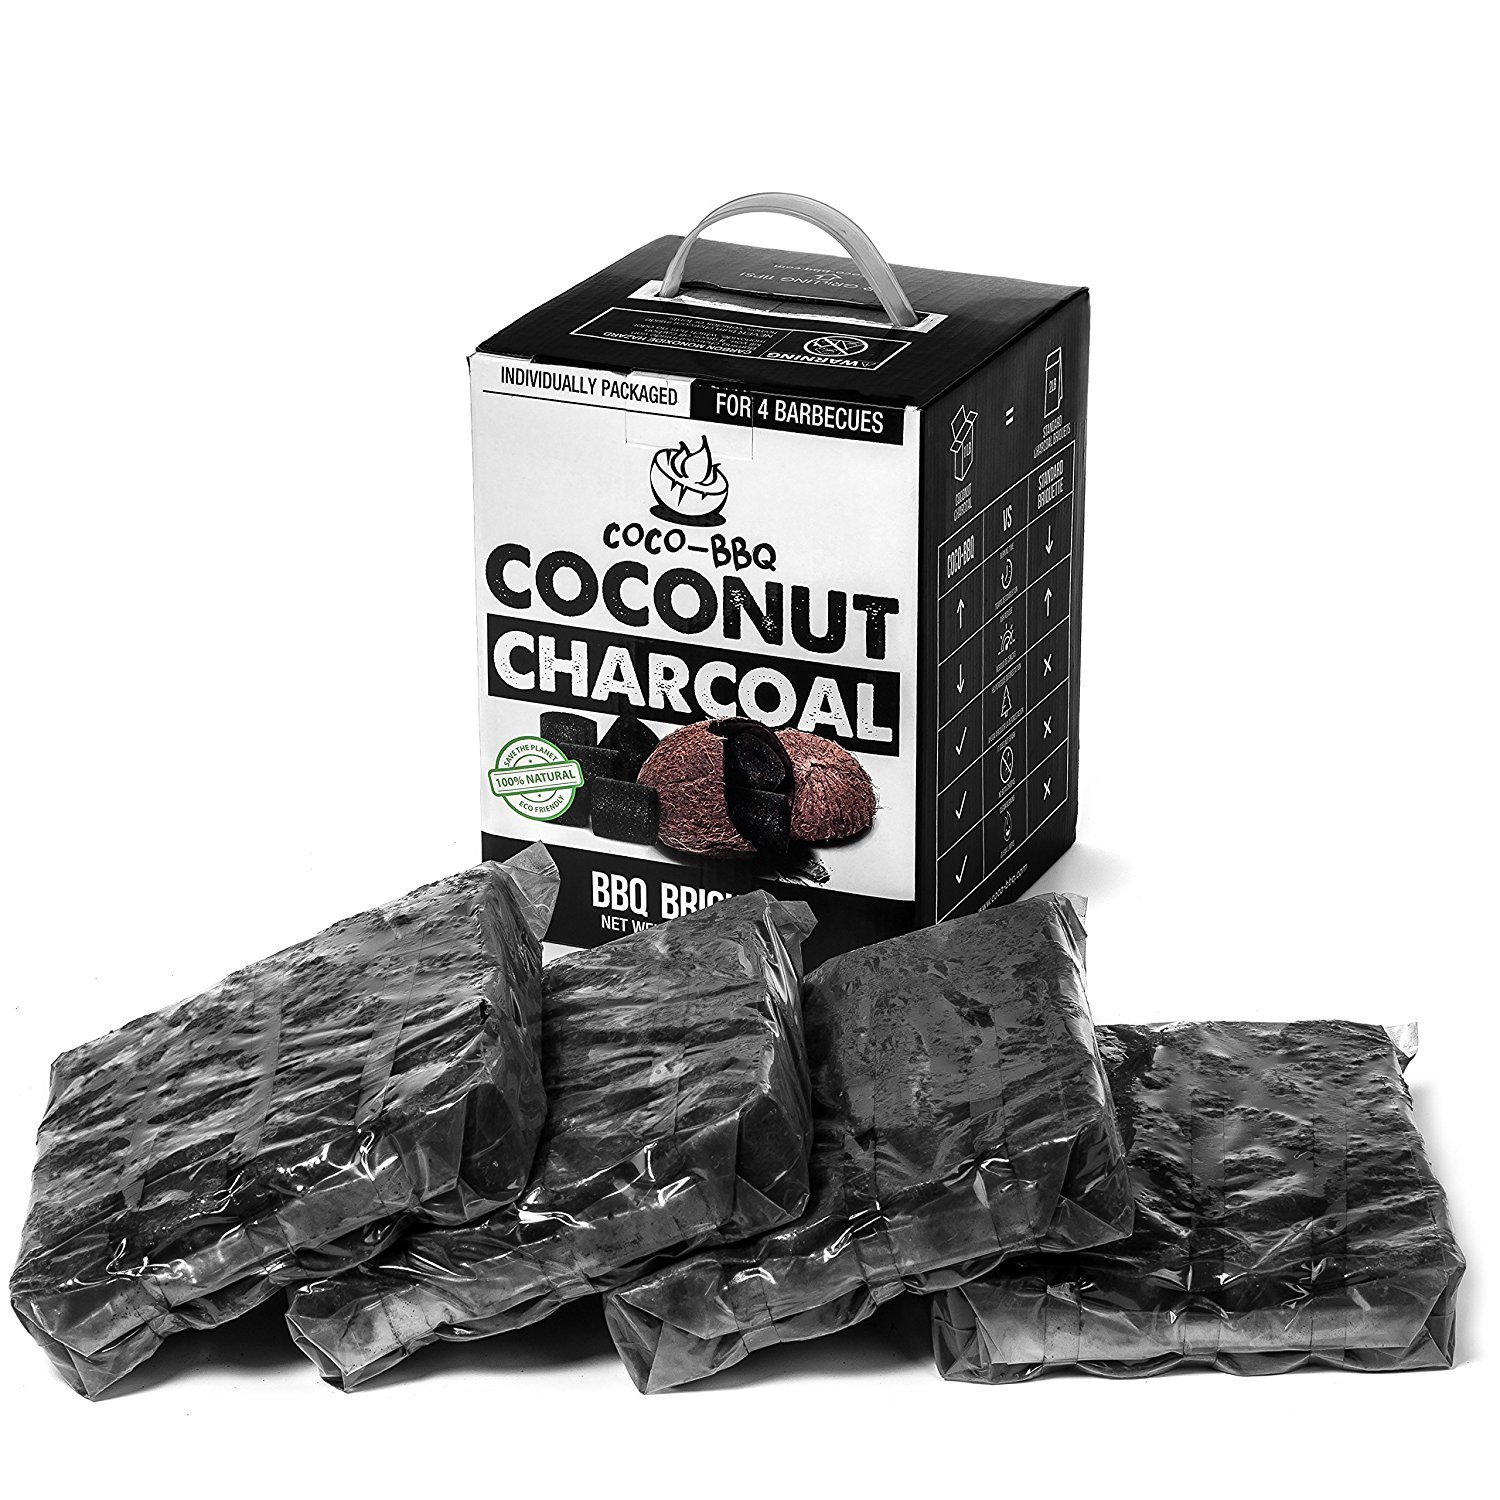 COCO-BBQ Eco-Friendly Barbecue (SET OF 6) Charcoal Made from Coconut Shells for Low and Slow Grilling by COCO-BBQ (Image #2)